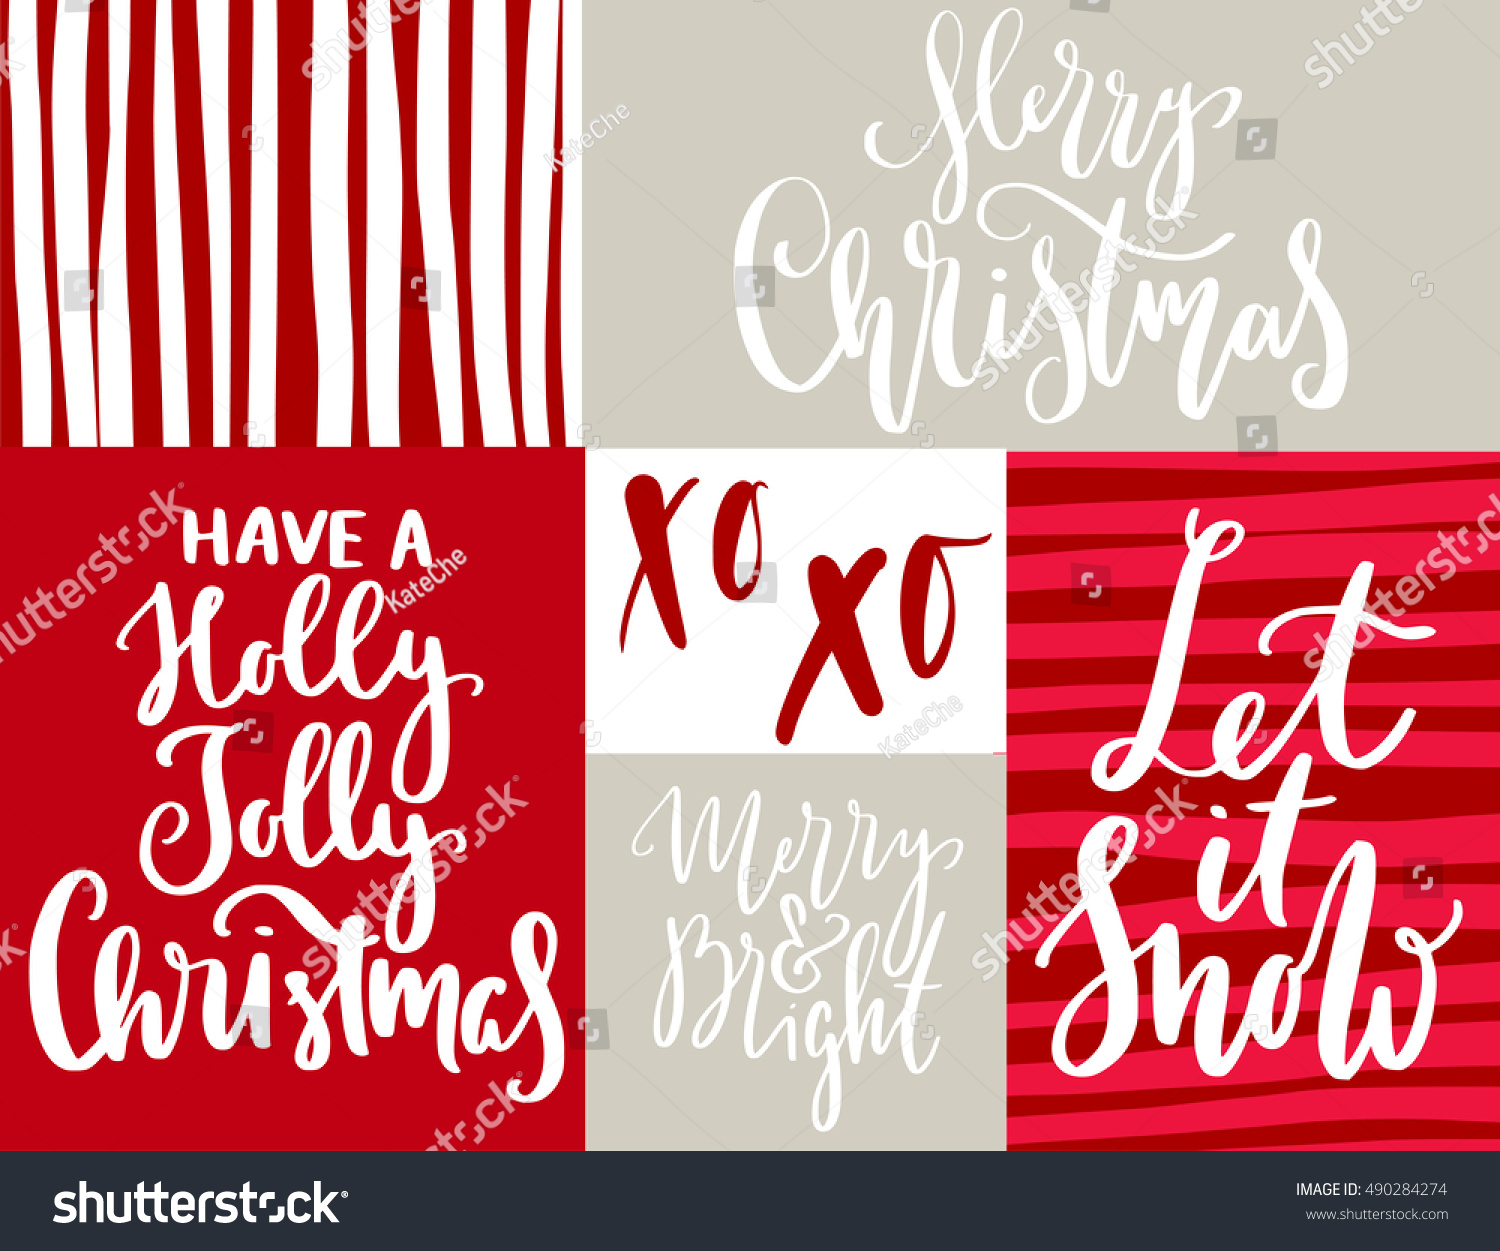 Christmas Quotes Sayings Postcards Poster Banner Stock Vector ...